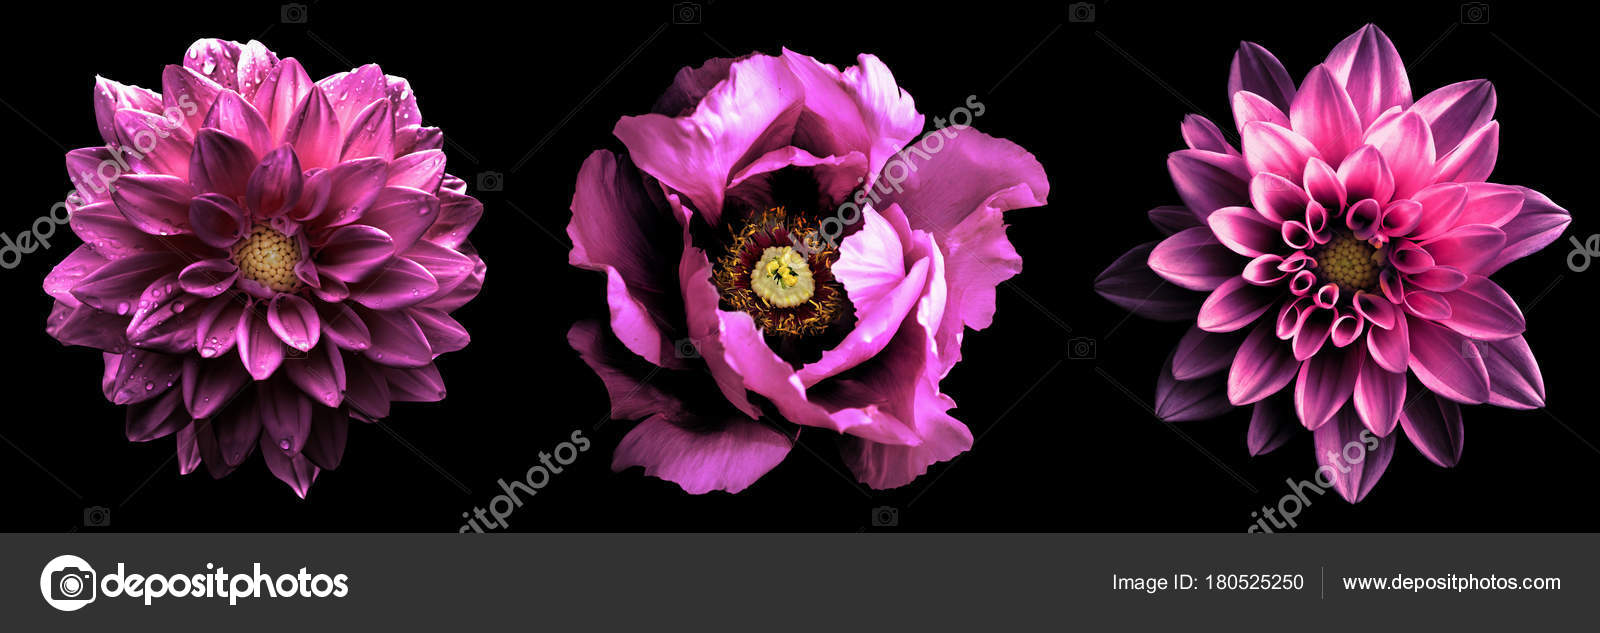 3 Surreal Exotic High Quality Pink Flowers Macro Isolated On Black